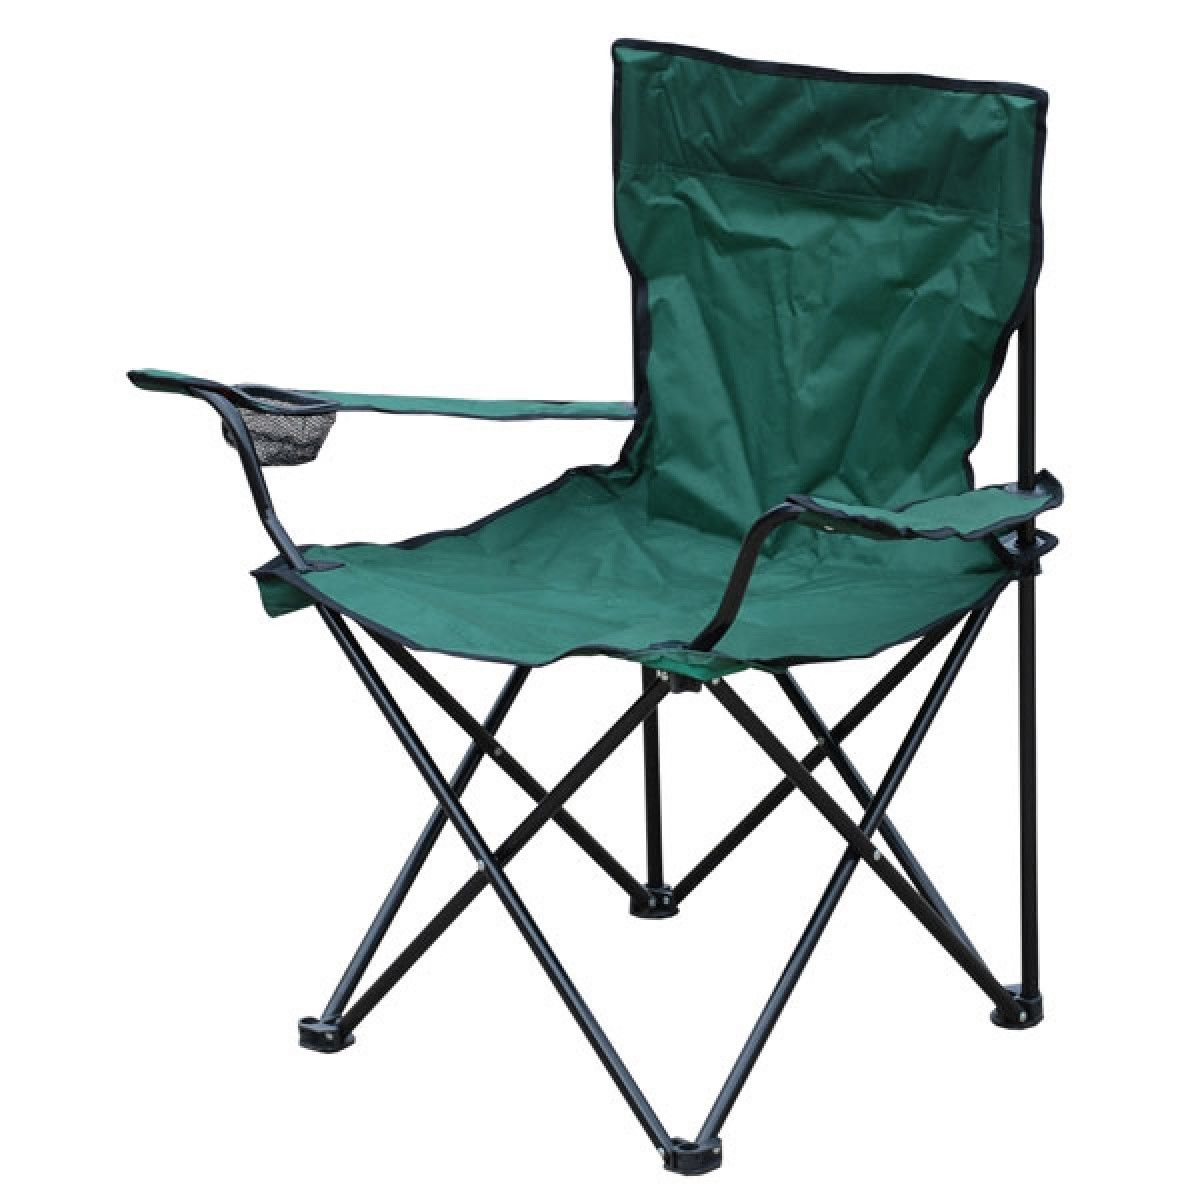 Campfire Chairs Brand New Lightweight Portable Outdoor Camping Garden